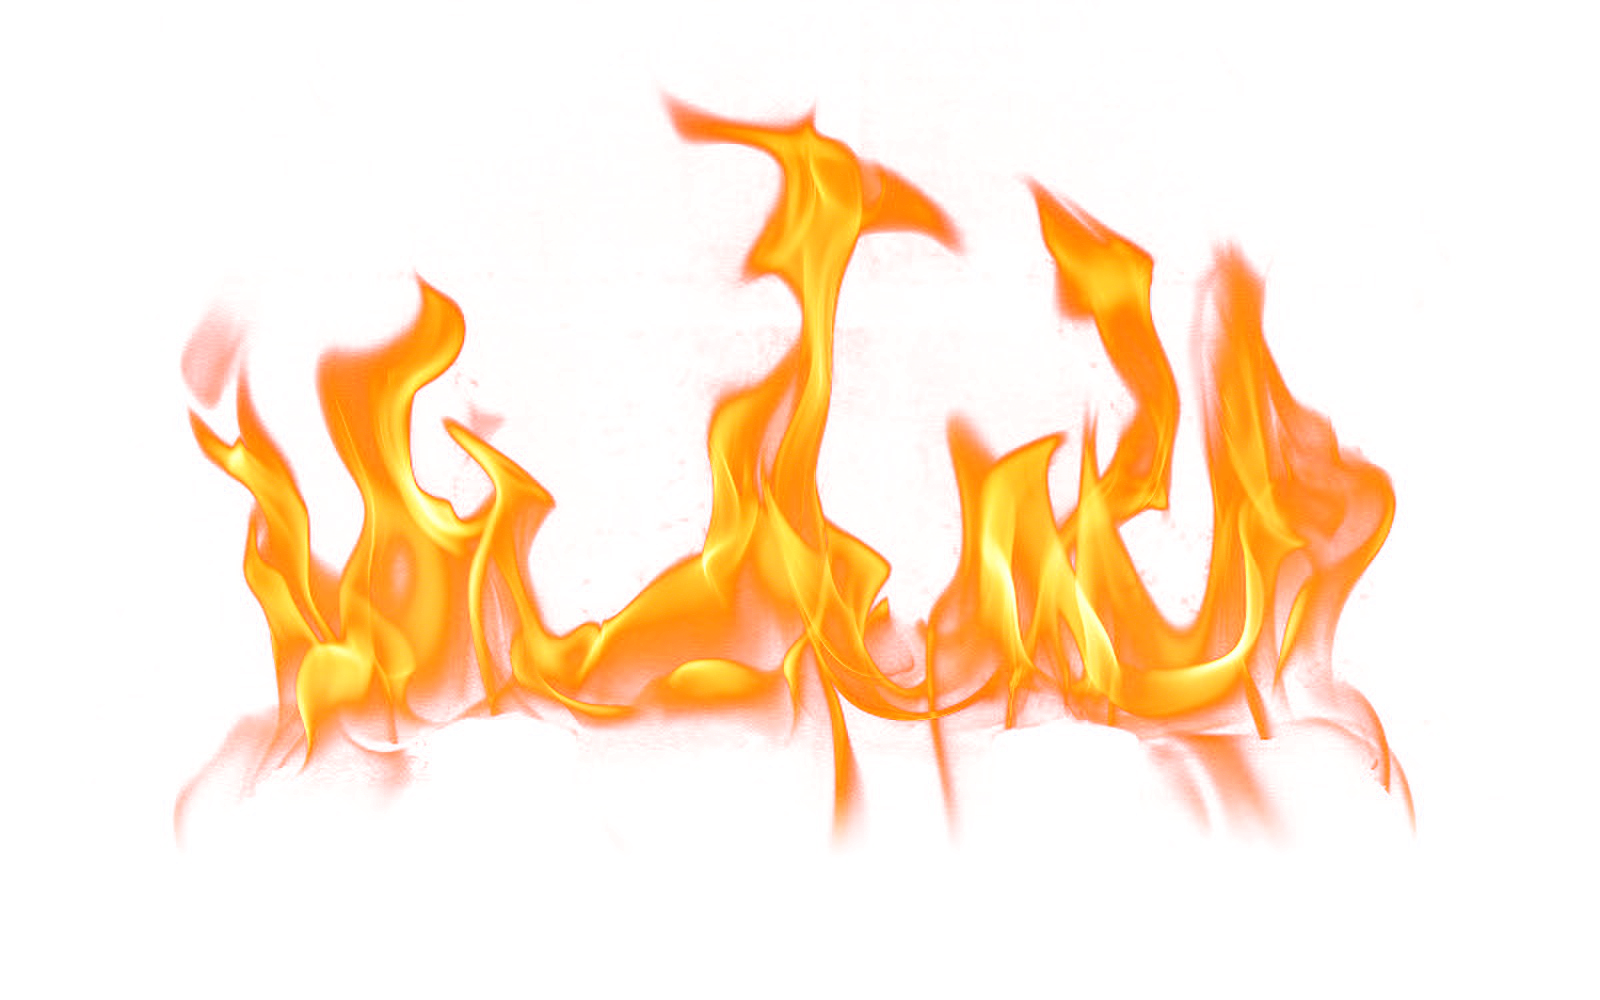 Flame fire PNG images free download